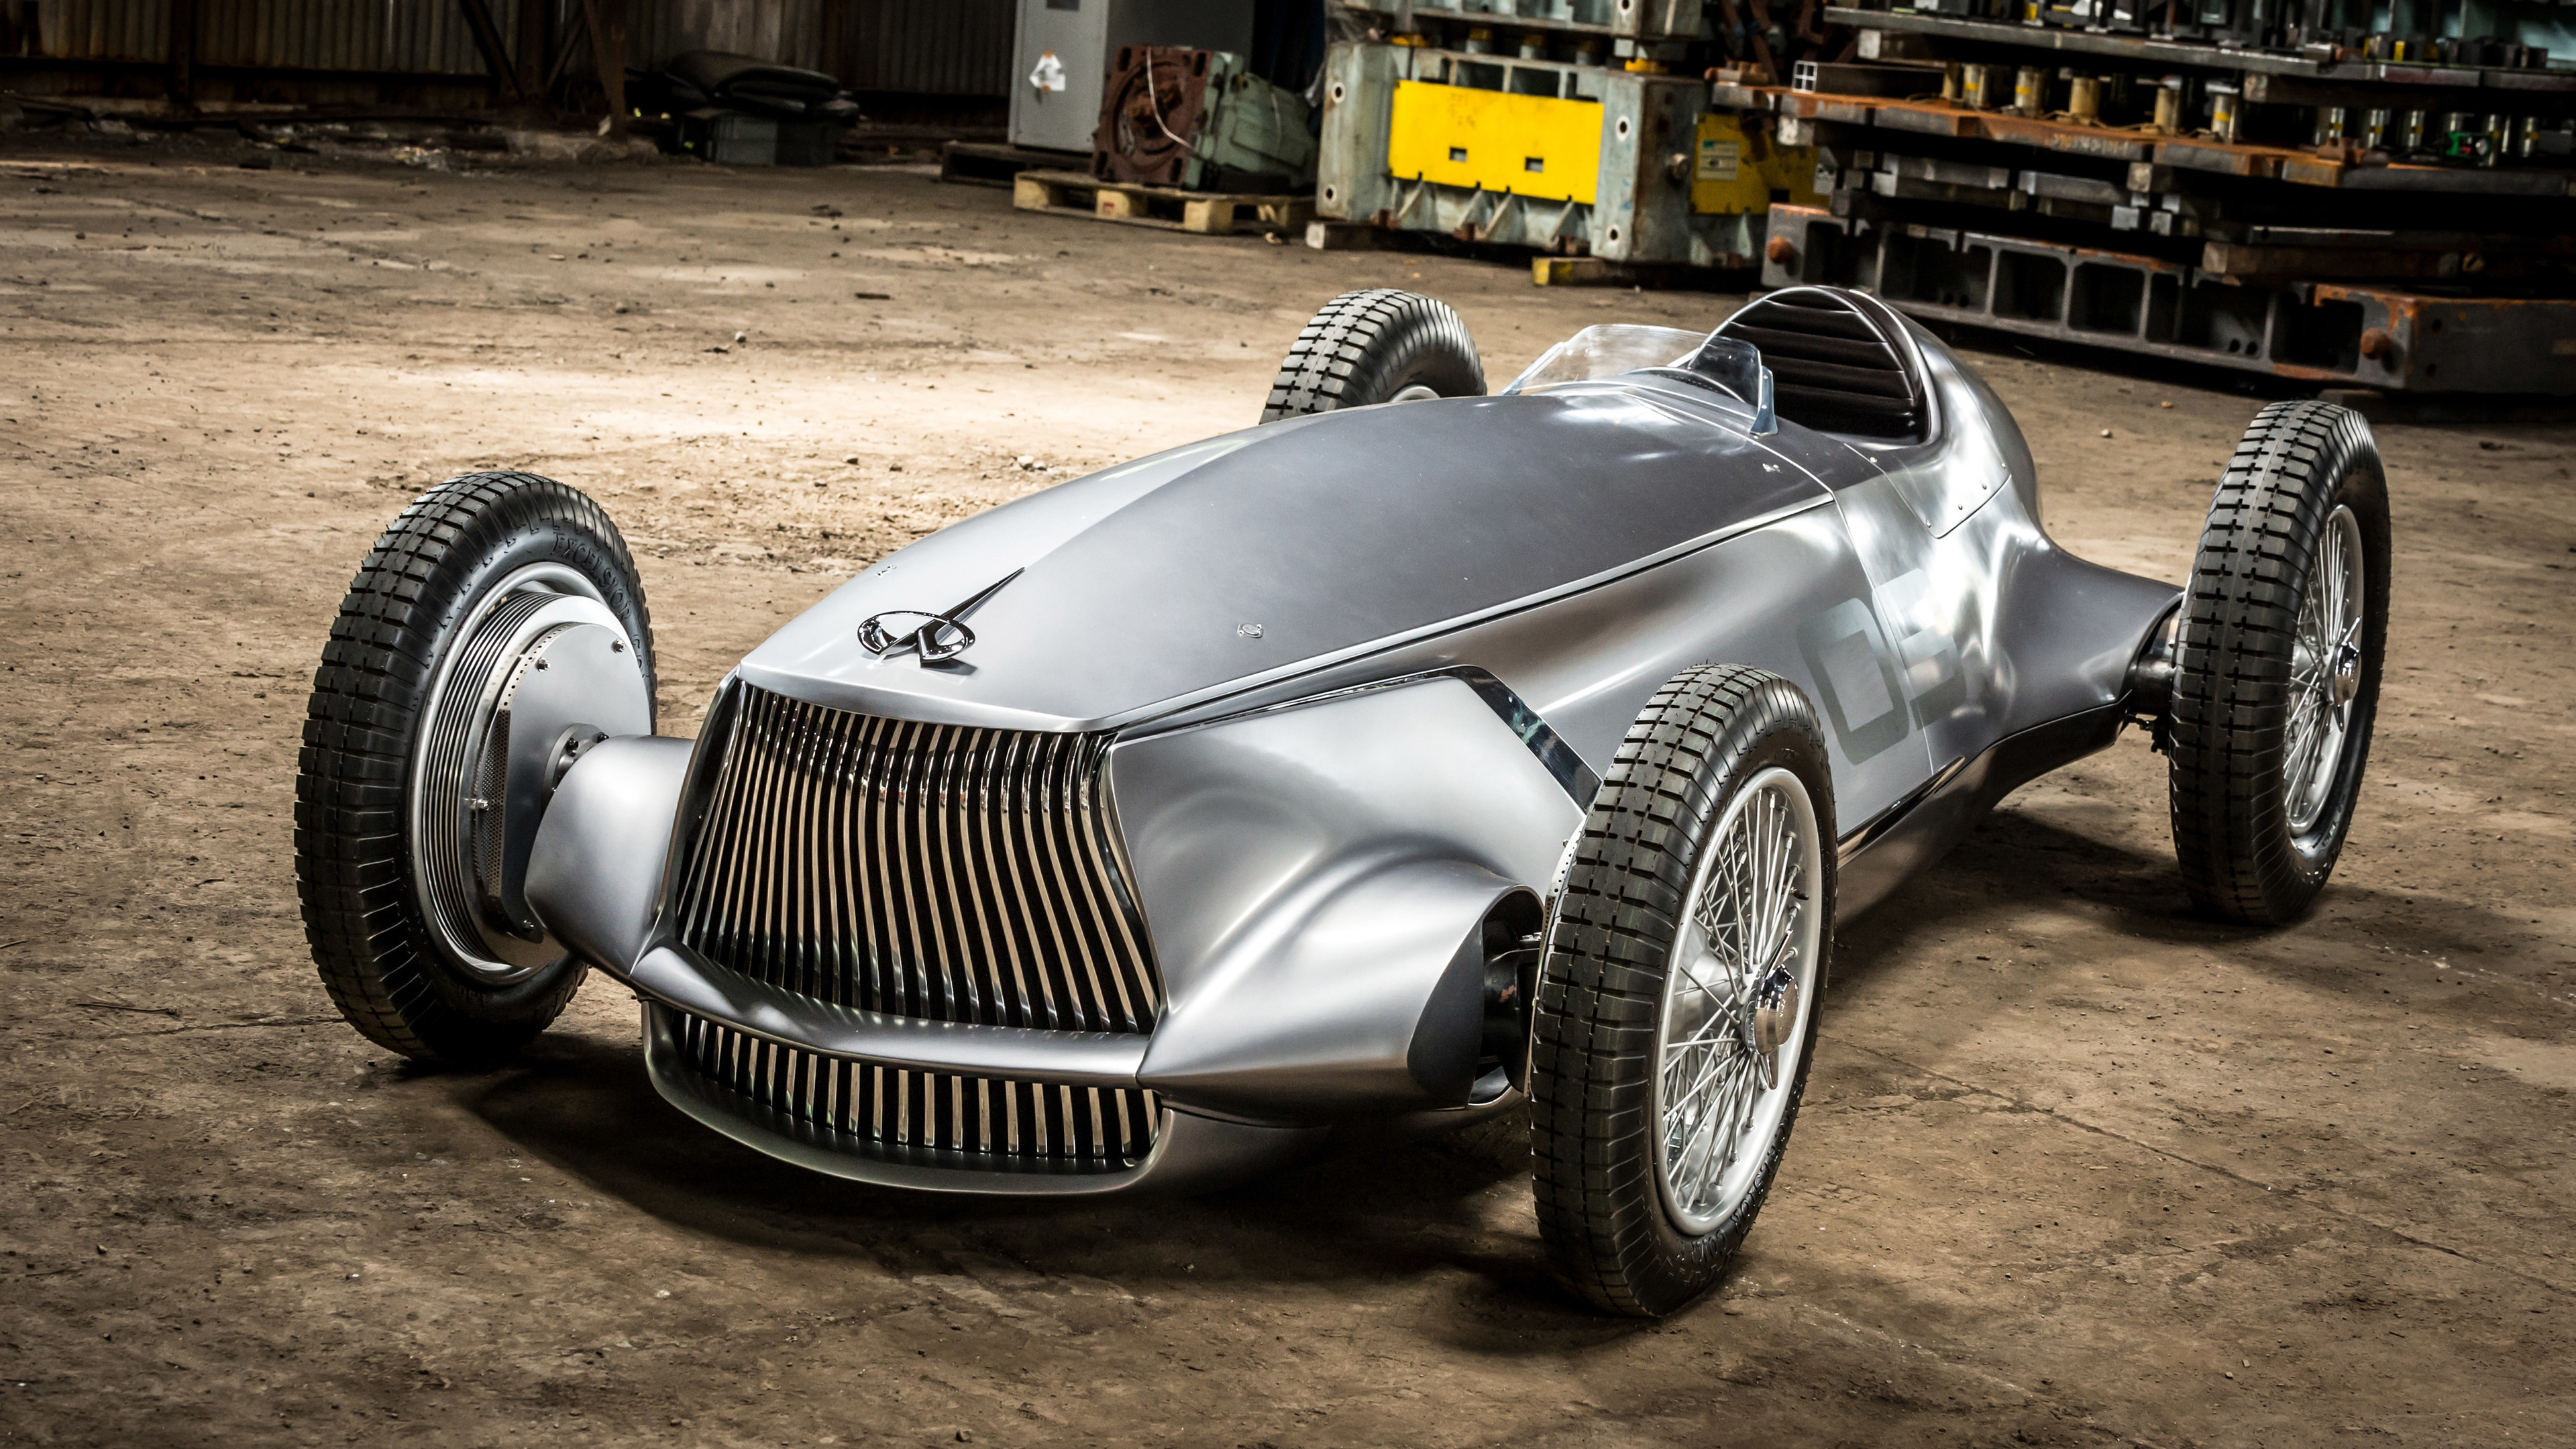 infiniti prototype 9 1539106088 - Infiniti Prototype 9 - infiniti wallpapers, hd-wallpapers, concept cars wallpapers, cars wallpapers, 4k-wallpapers